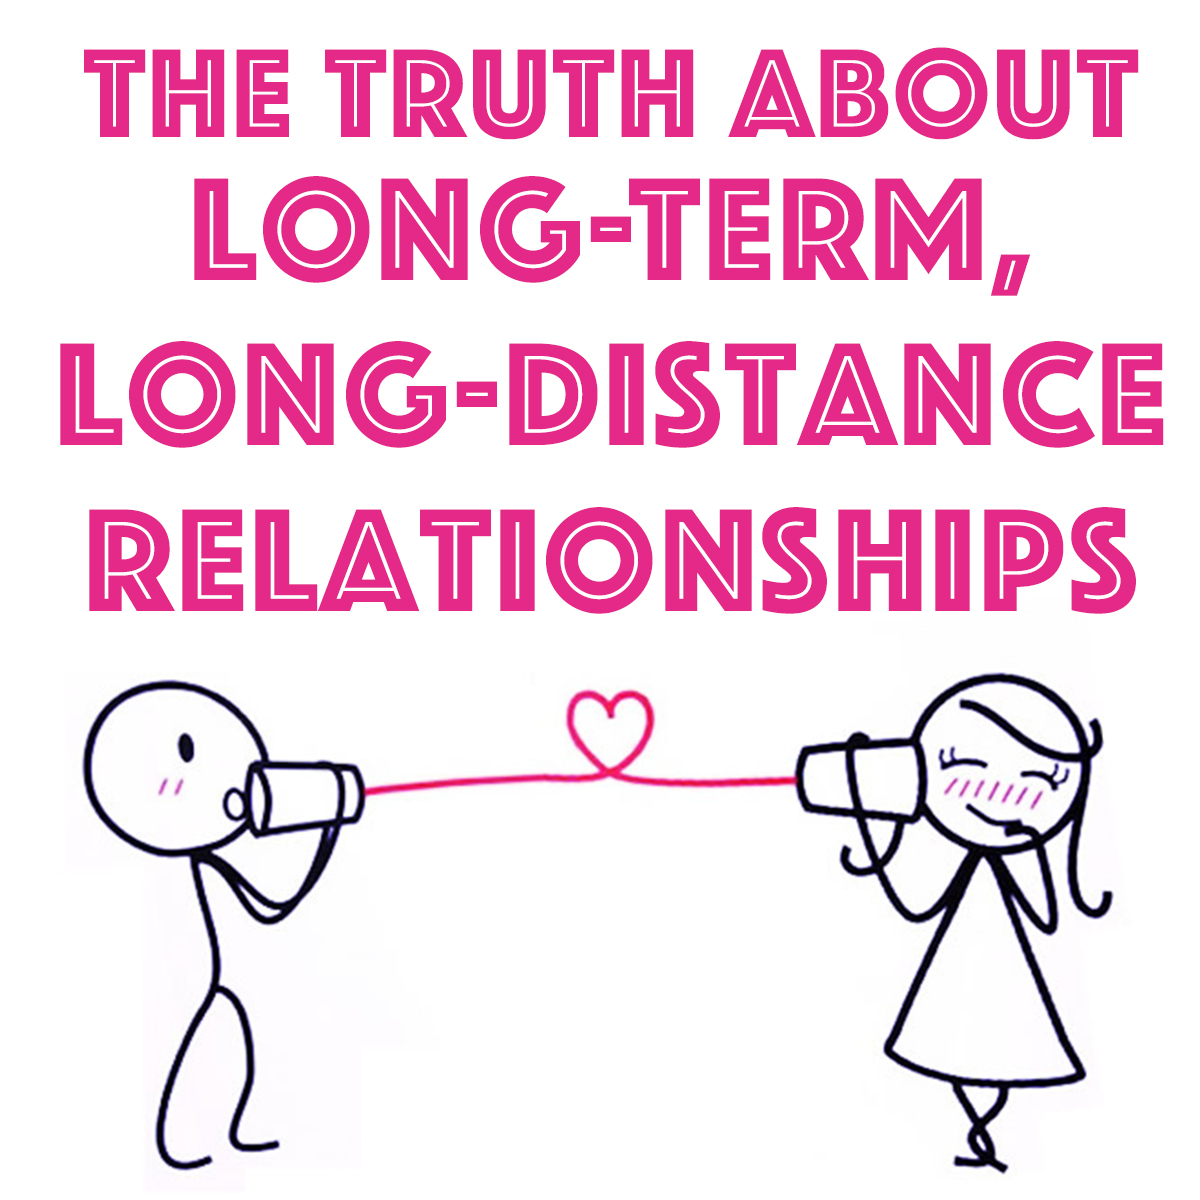 The Truth About Long-Term, Long-Distance Relationships